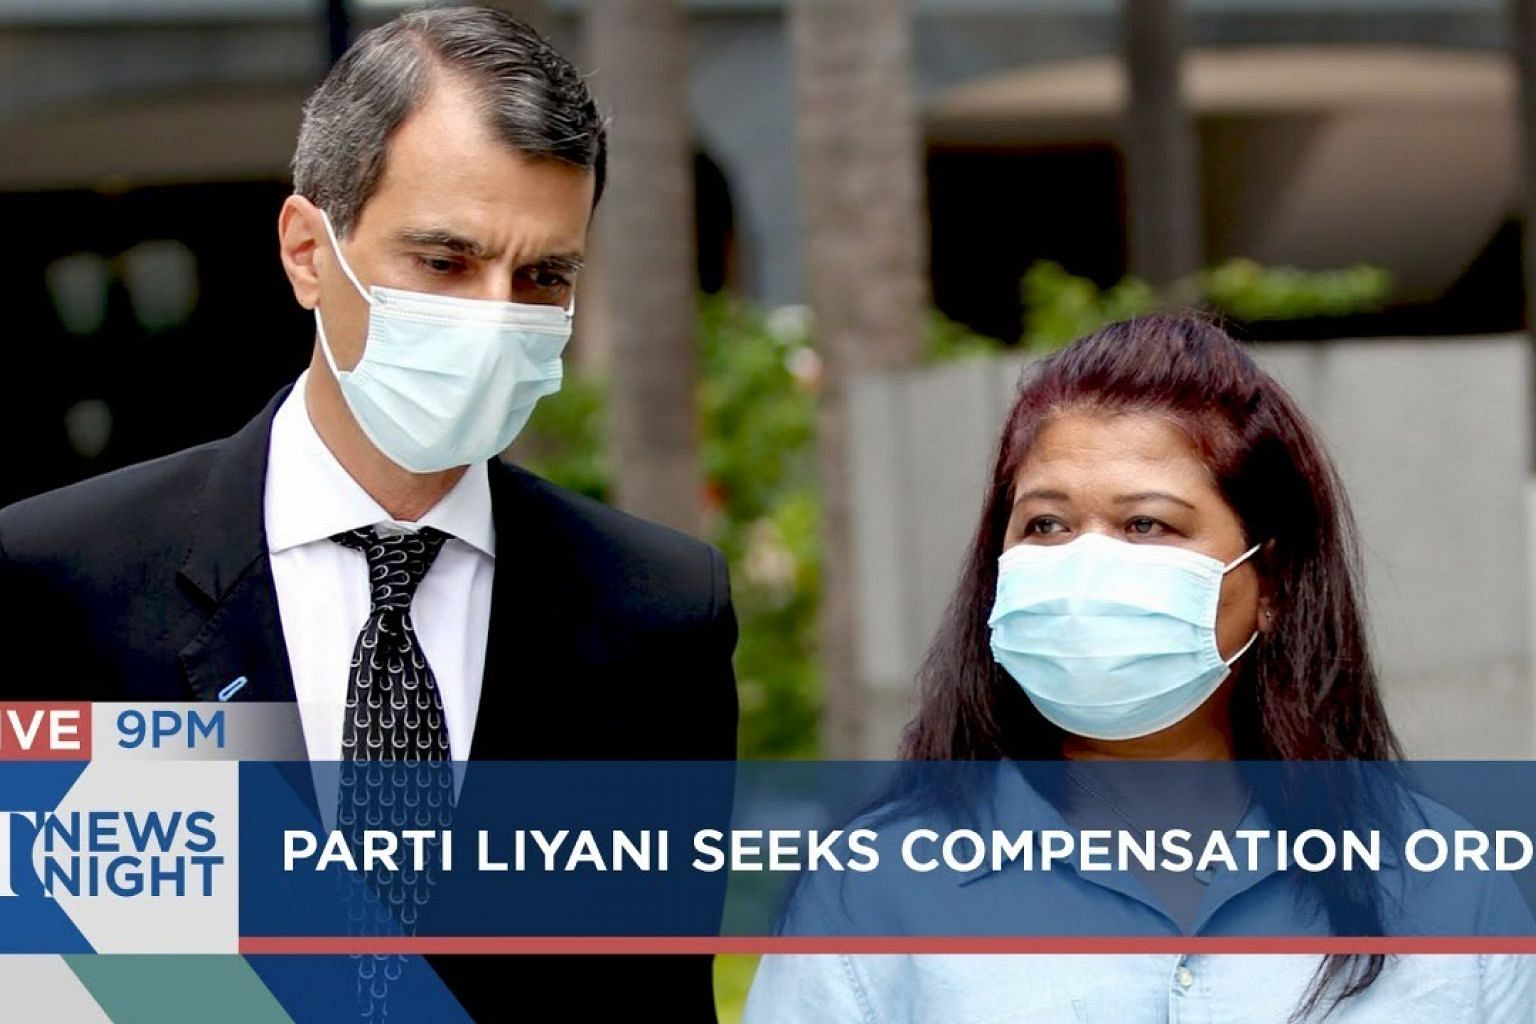 Parti Liyani seeks compensation order; More can serve SHN at home from Nov 4 | ST NEWS NIGHT